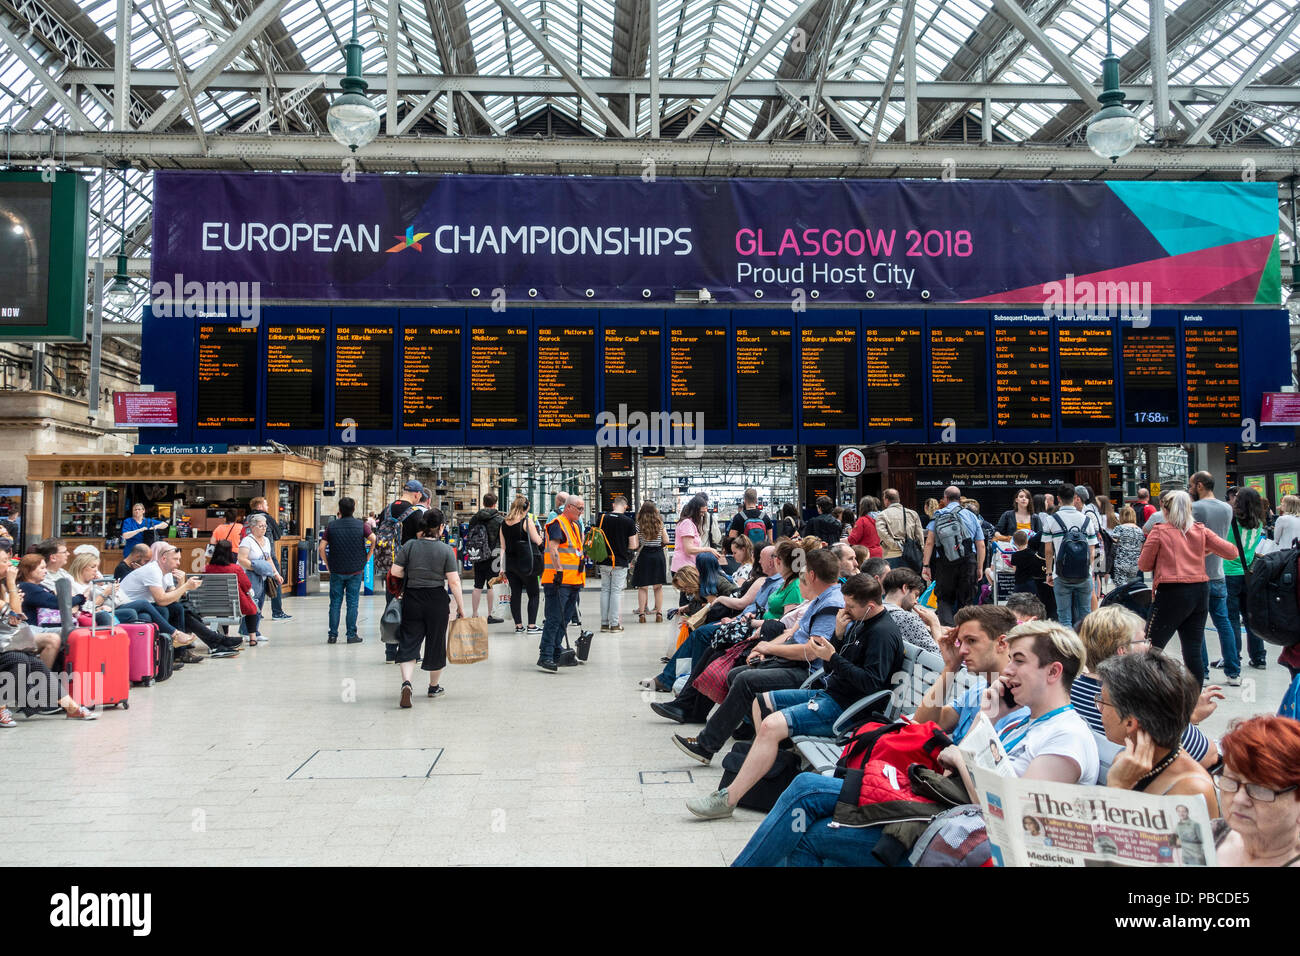 Large Banner promoting Glasgow 2018, the multi-sport European Championships, above the departures board in Glasgow Central Station, Scotland, UK - Stock Image